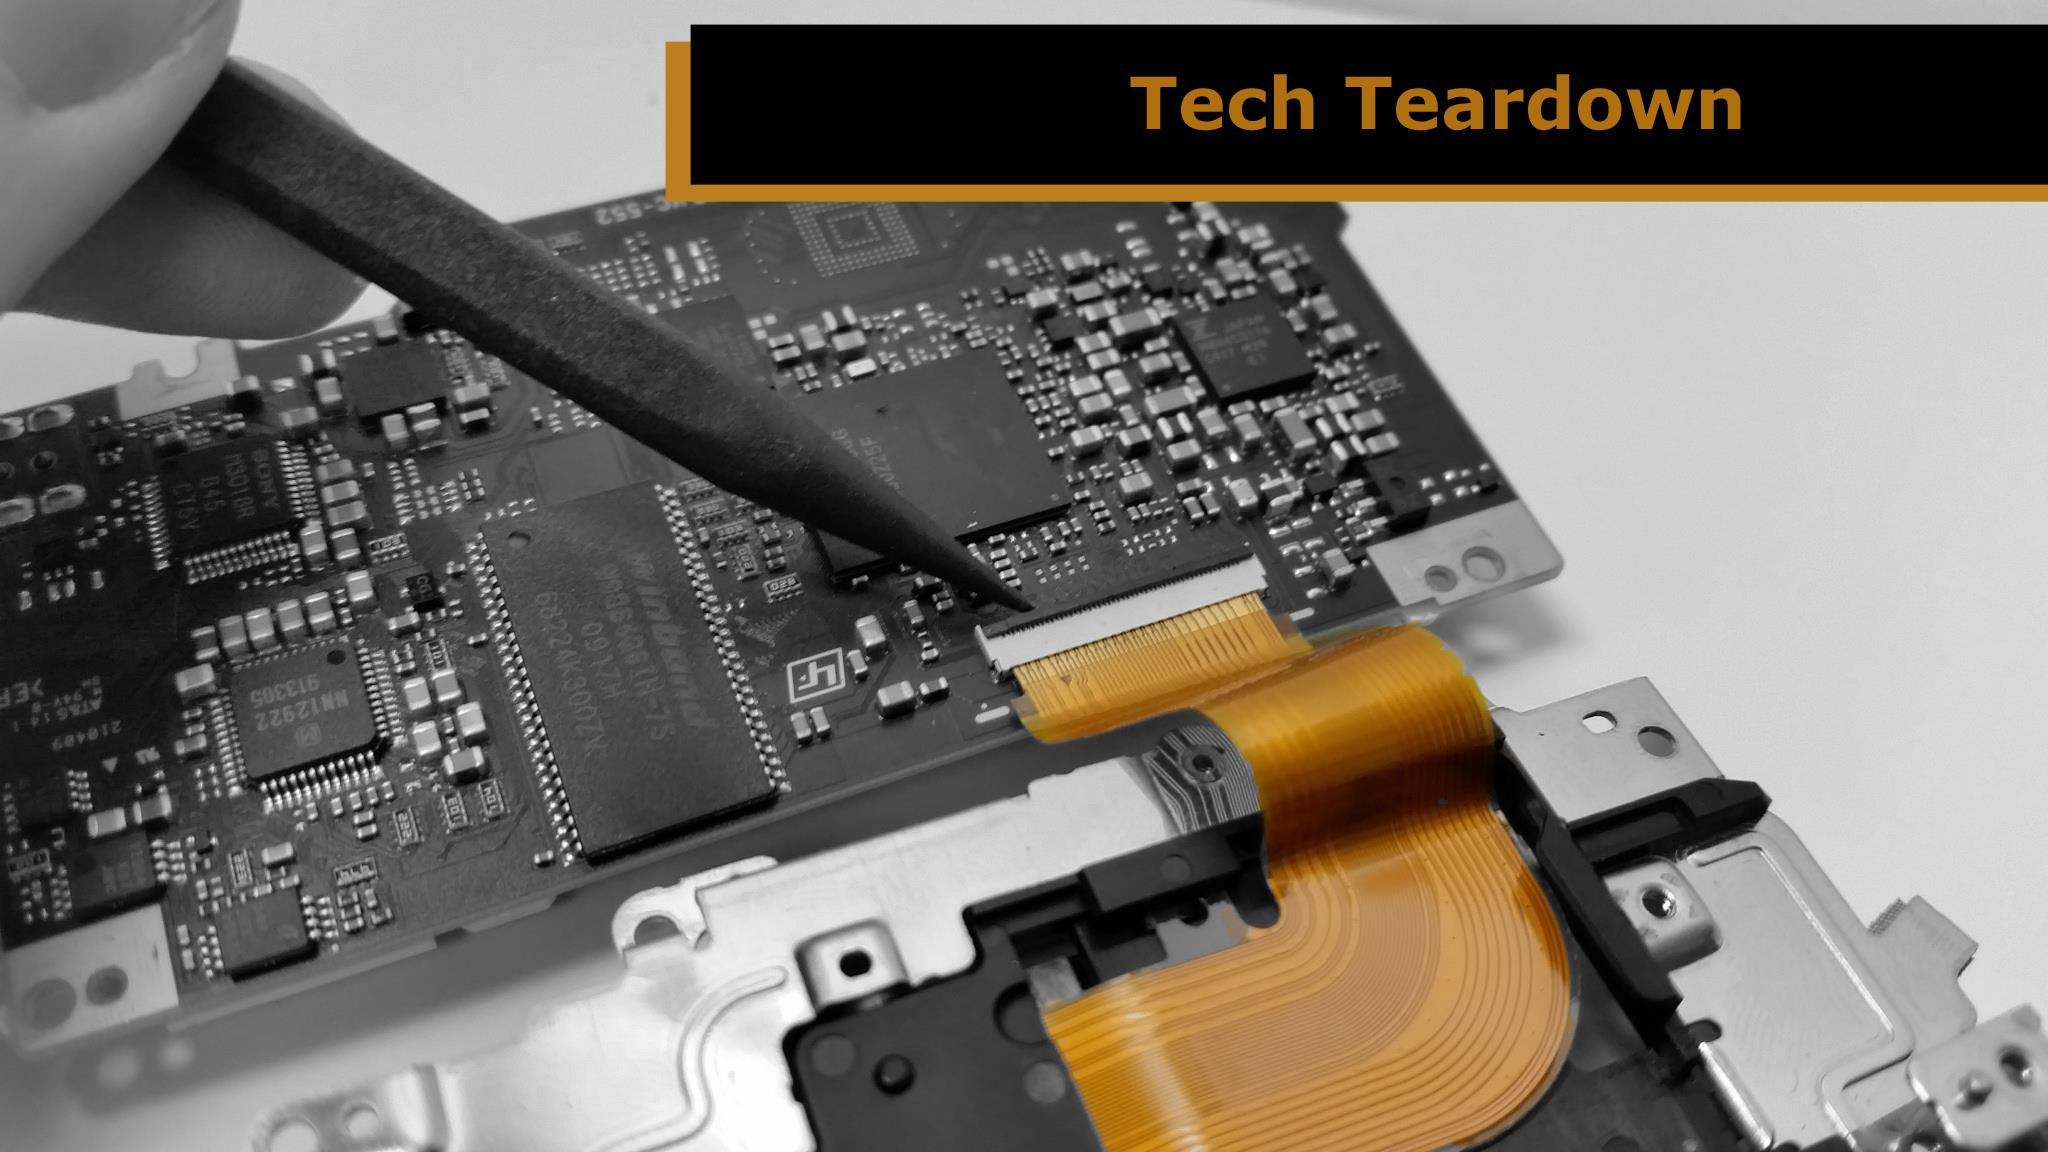 """Close up of someone using a spudger to work on a circuit board. The words """"Tech Teardown"""" appear in the upper right corner of the image."""